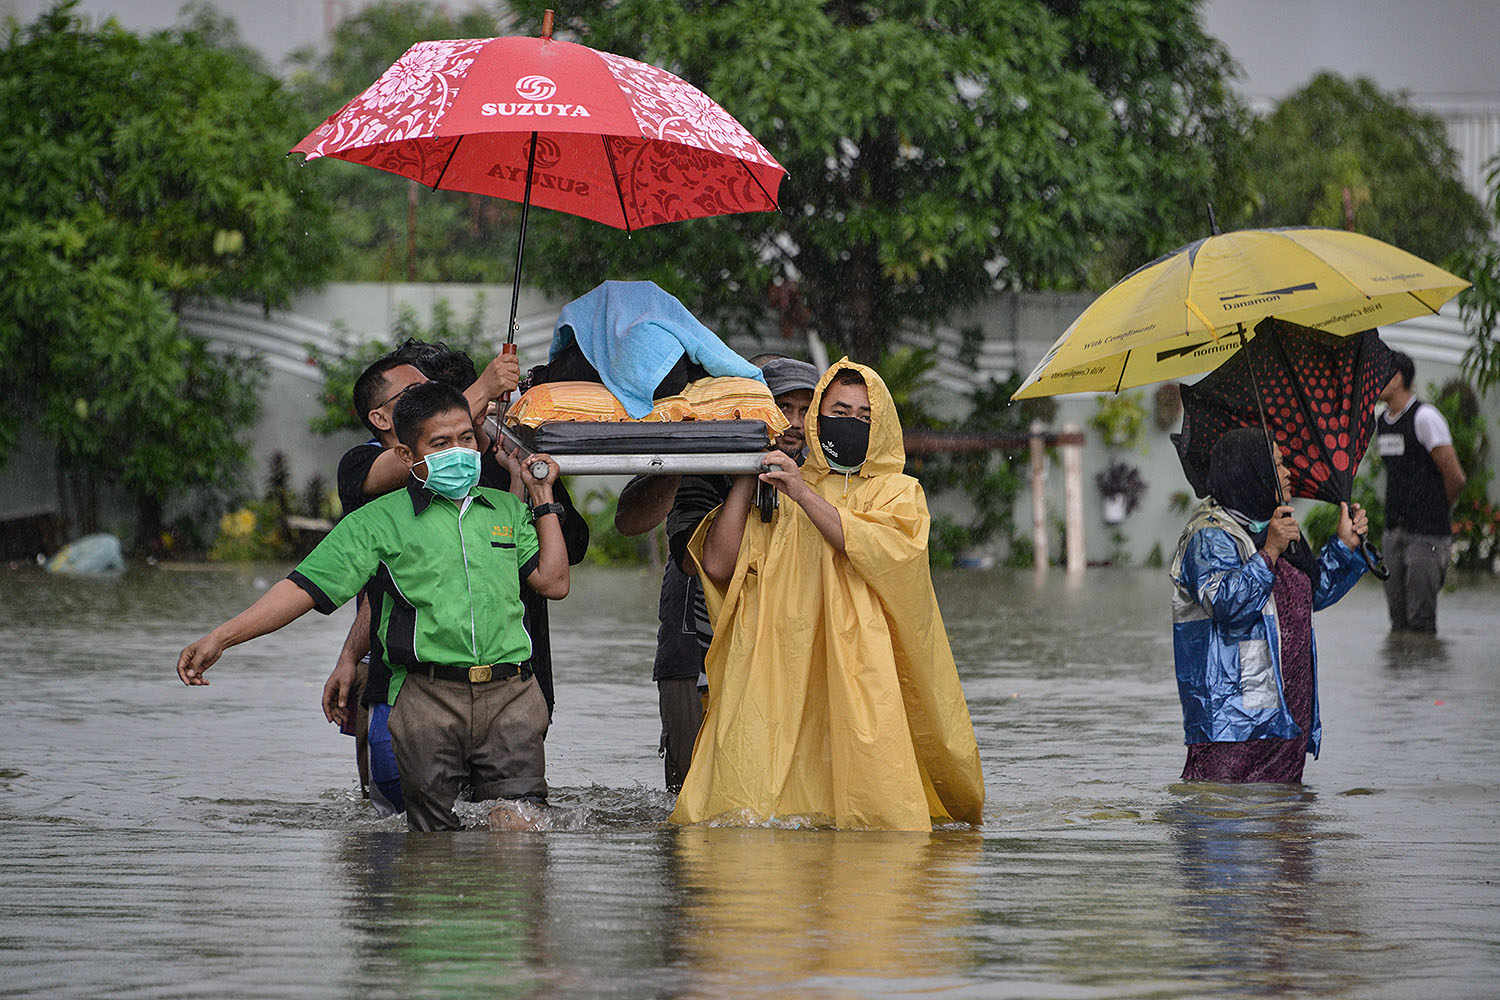 Medical workers evacuate a woman through a flooded residential area caused by heavy rain in Banda Aceh, Indonesia, on May 8. CHAIDEER MAHYUDDIN/AFP via Getty Images